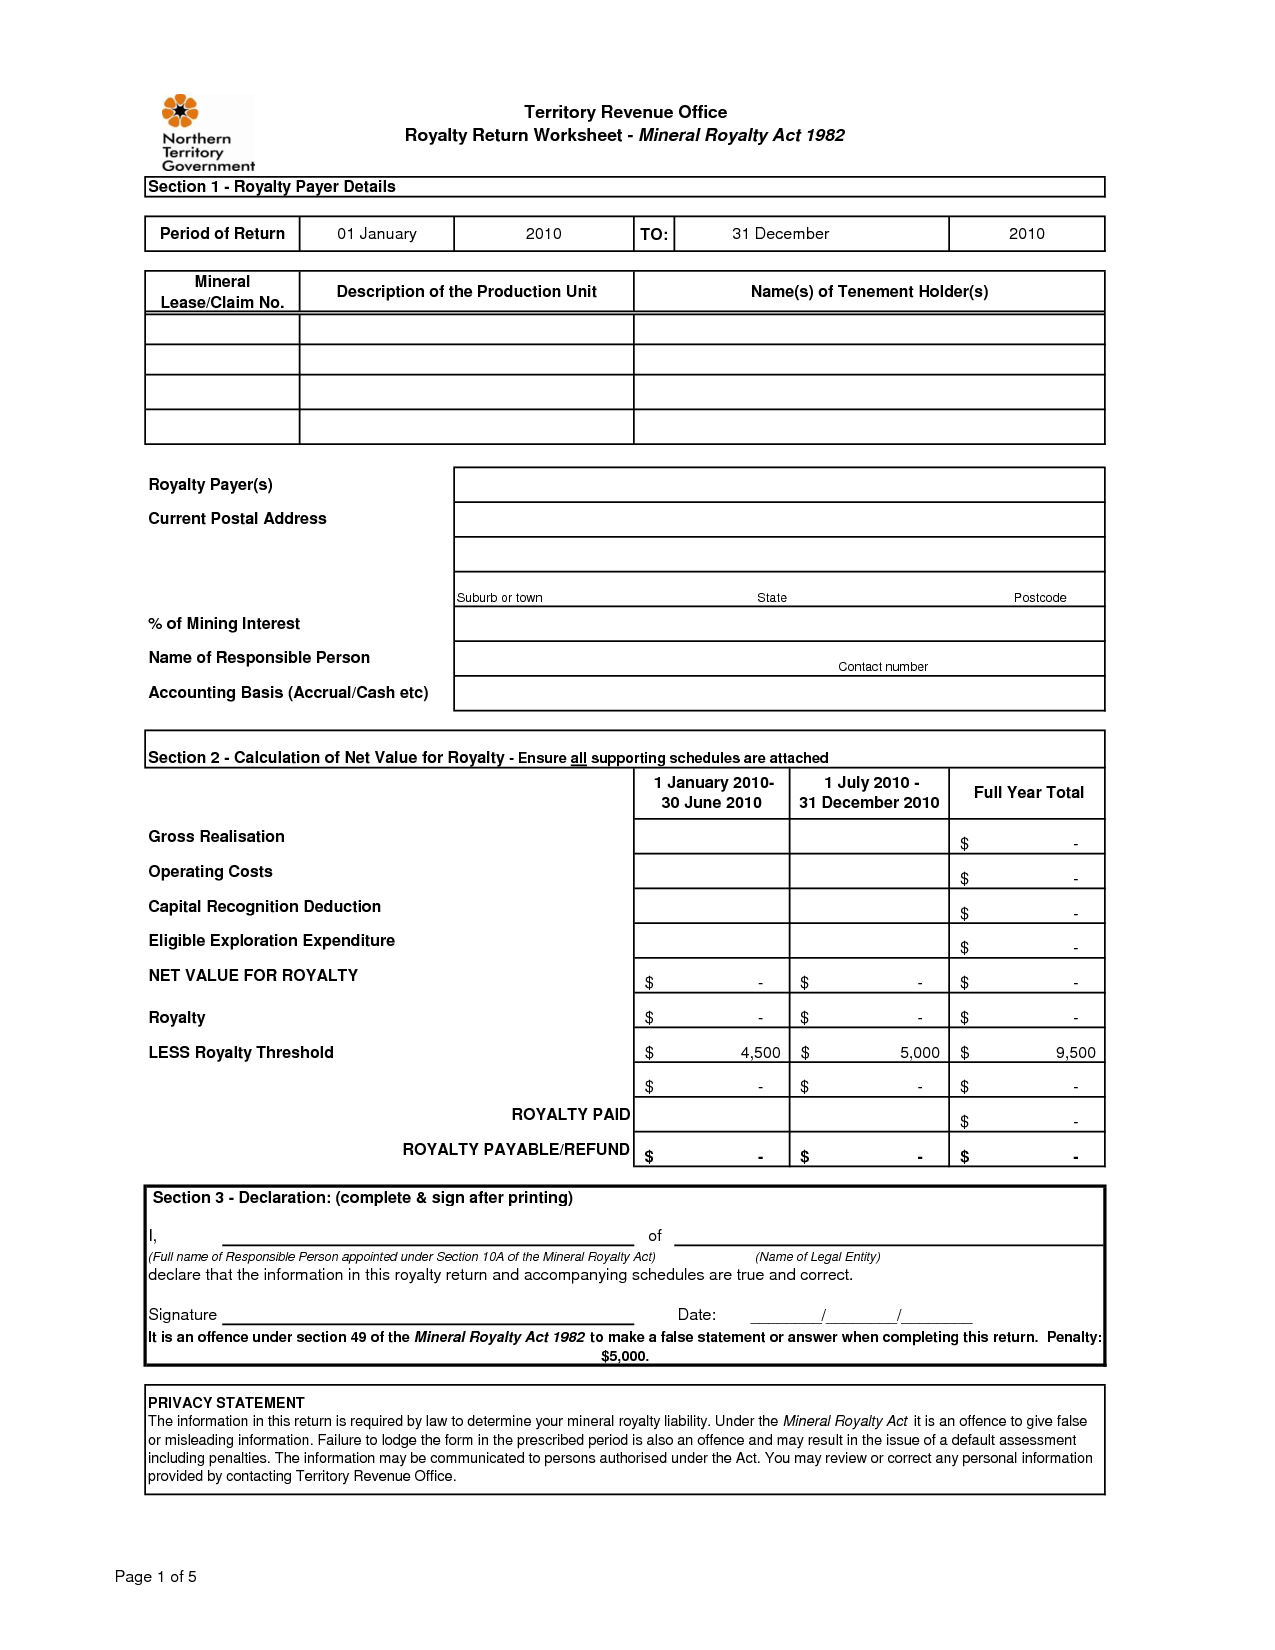 28 Vitamins And Minerals Worksheet